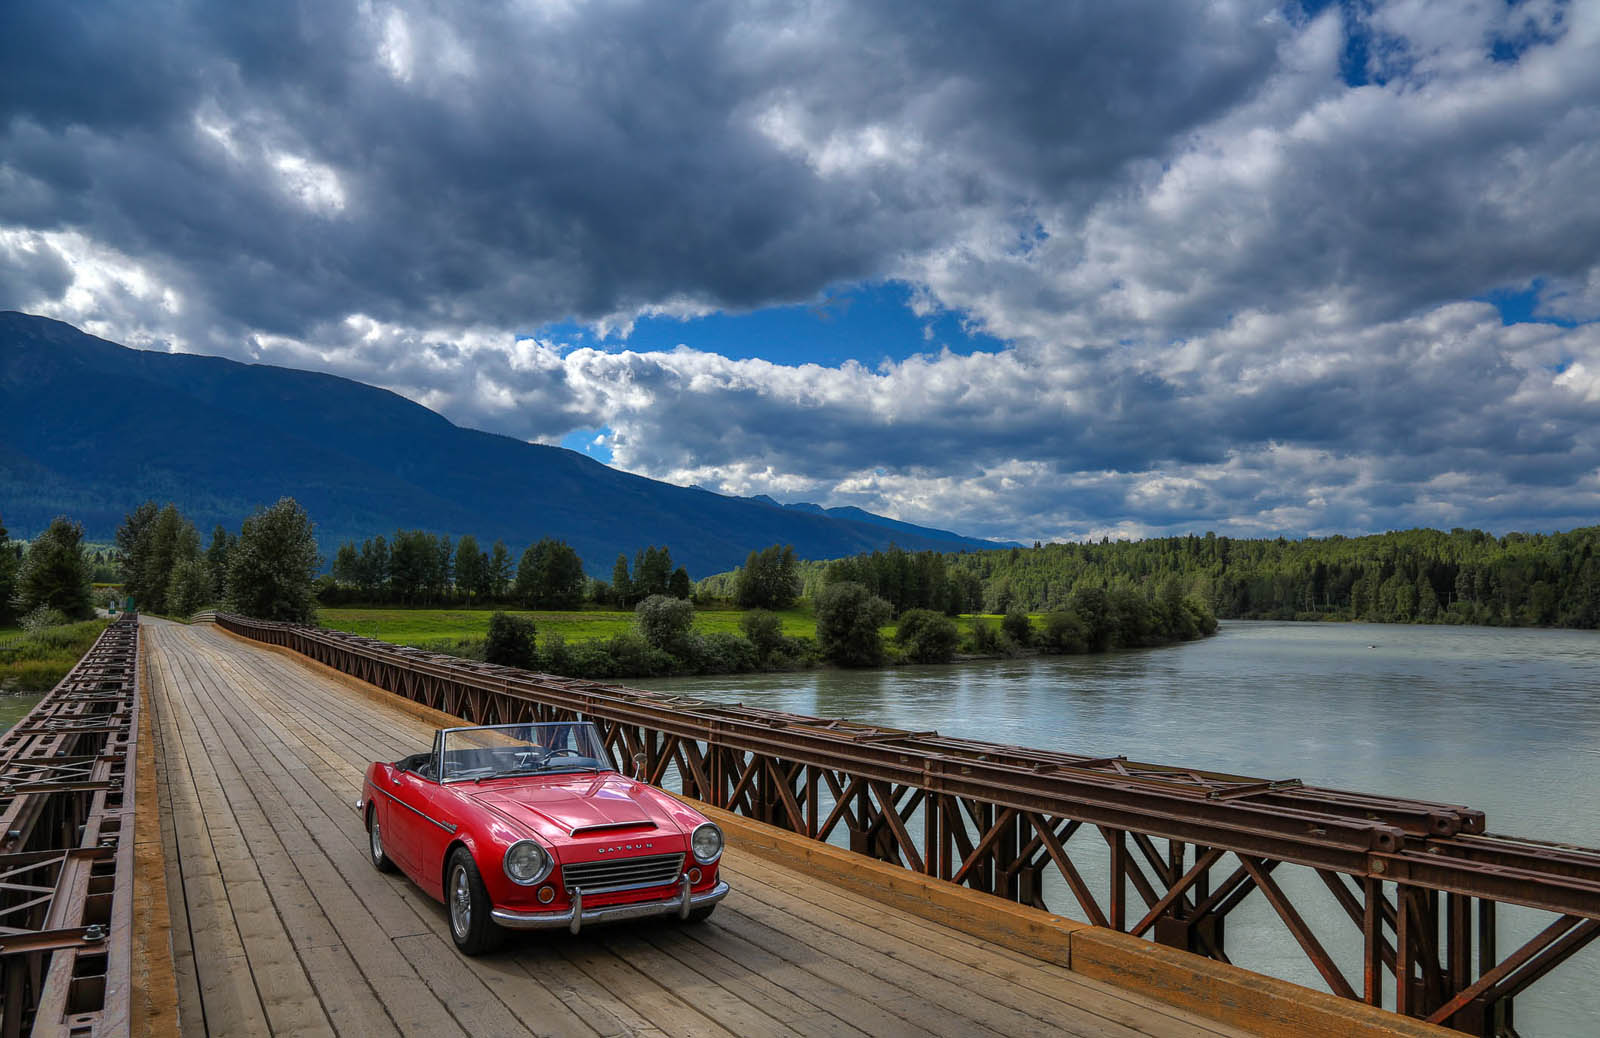 Owner Tours USA on His Datsun Roadster Road Trip | Petrolicious